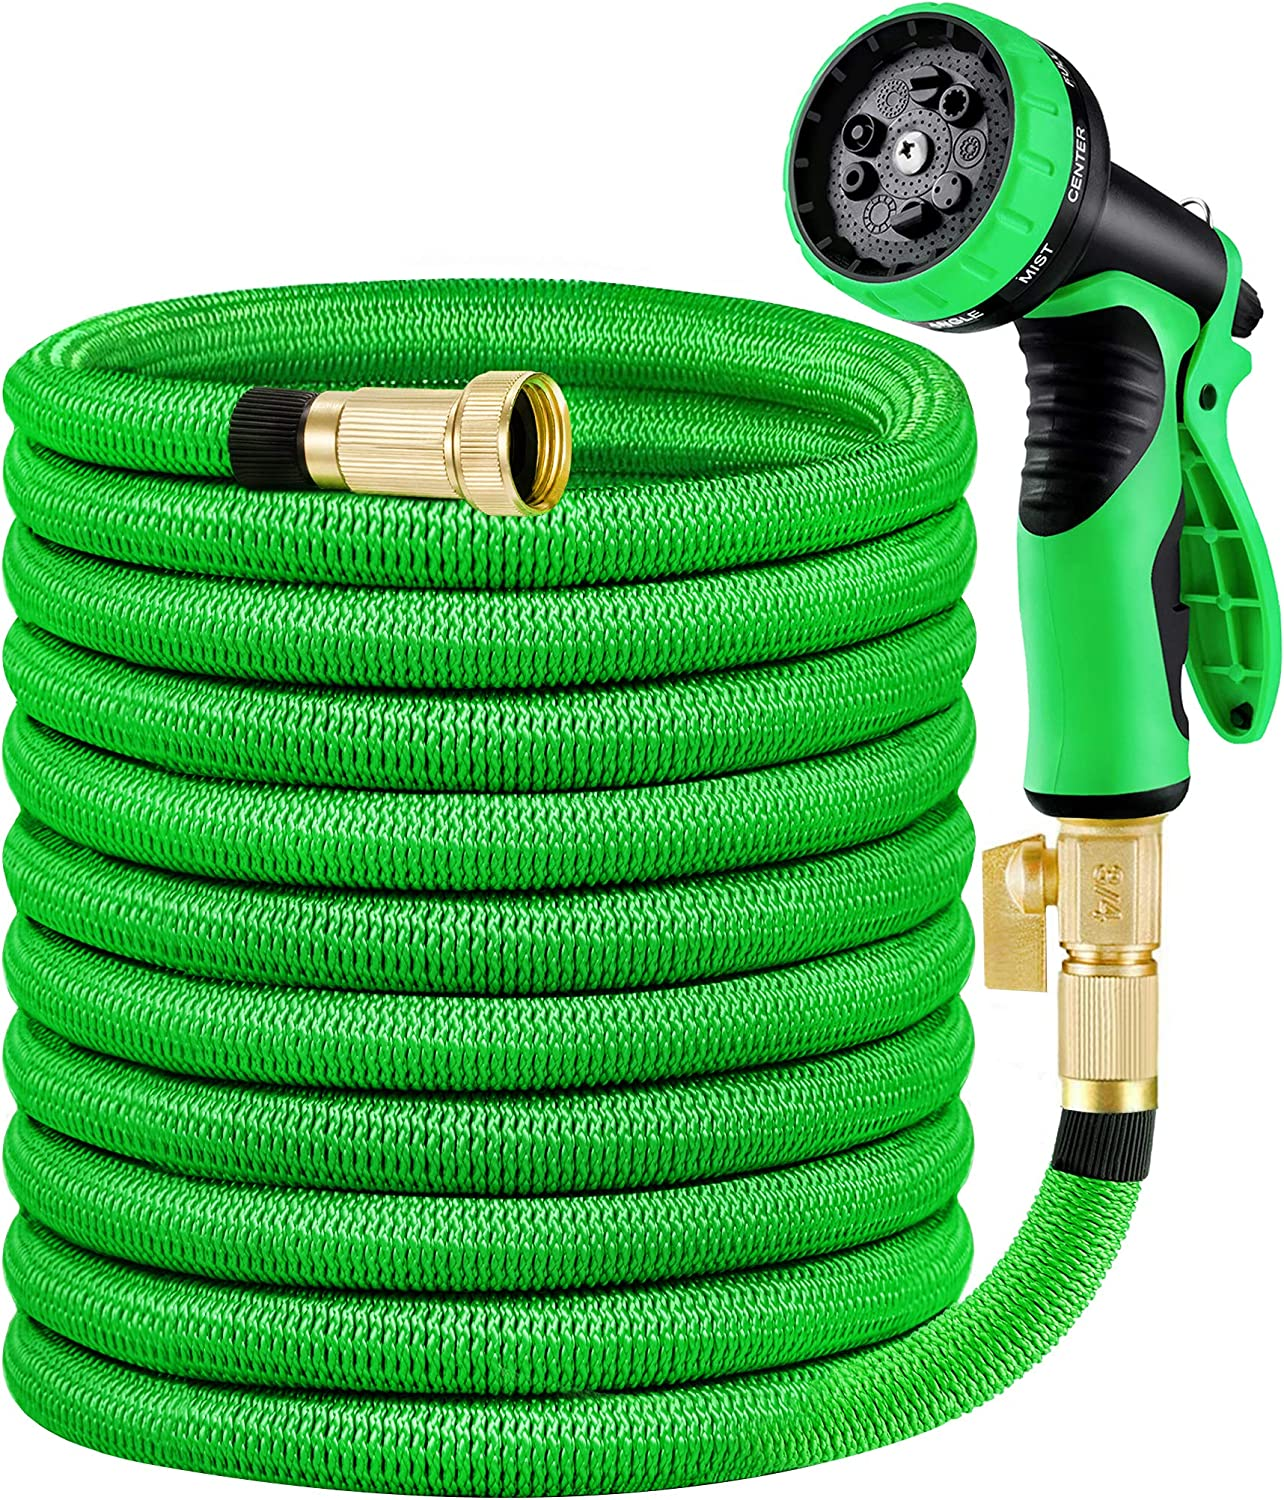 MoonLa 100ft Garden Hose, Expandable Water Hose with 3/4